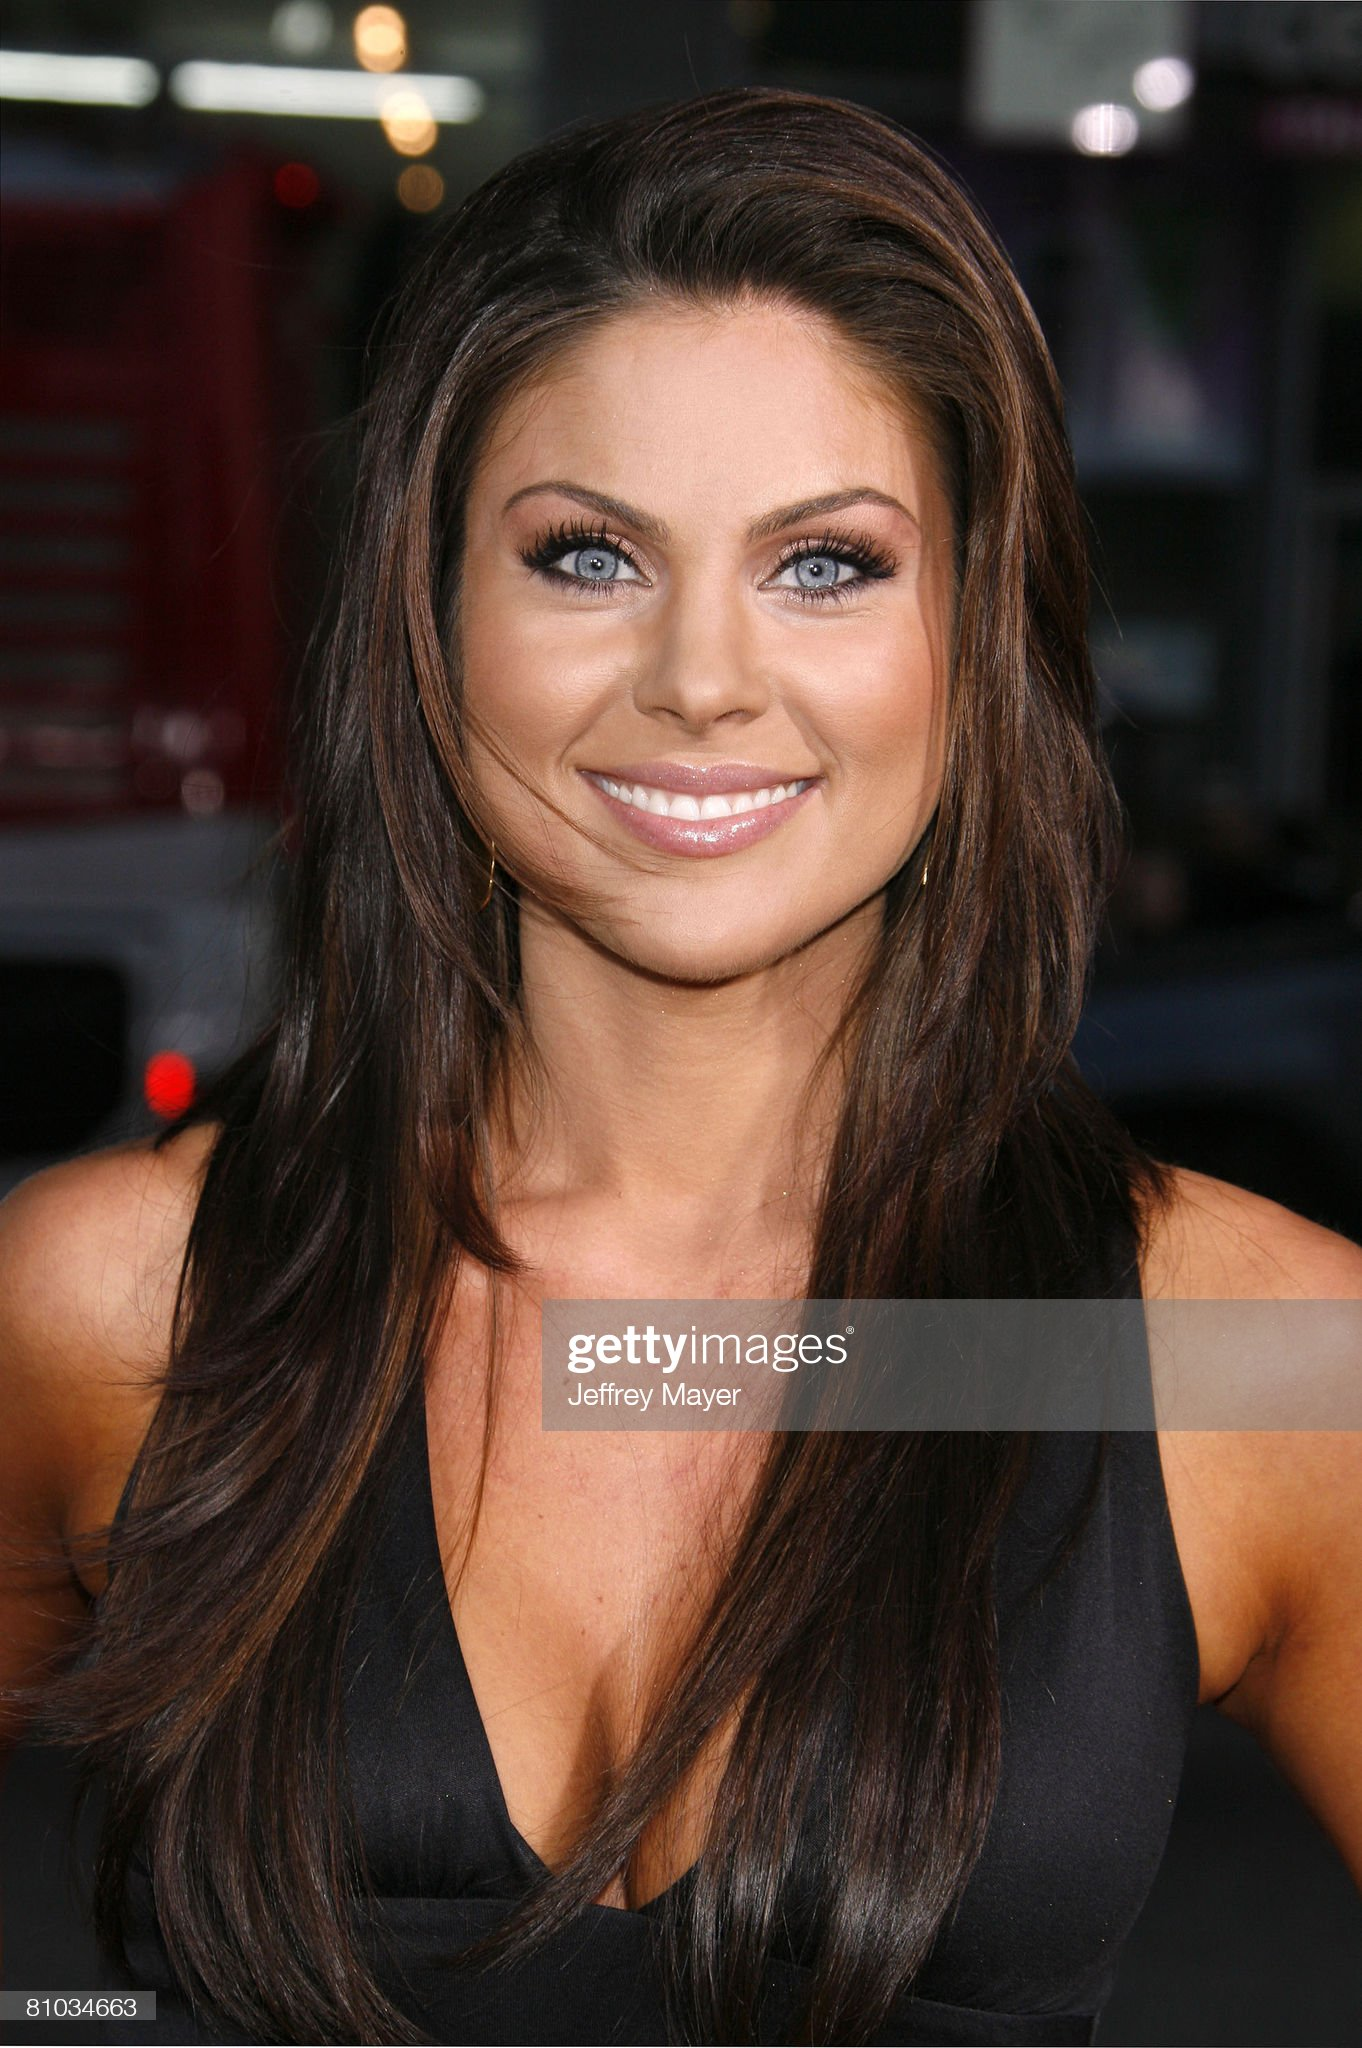 ¿Cuánto mide Nadia Bjorlin? - Real height Actress-nadia-bjorlin-arrives-at-the-world-premiere-of-vice-at-the-picture-id81034663?s=2048x2048